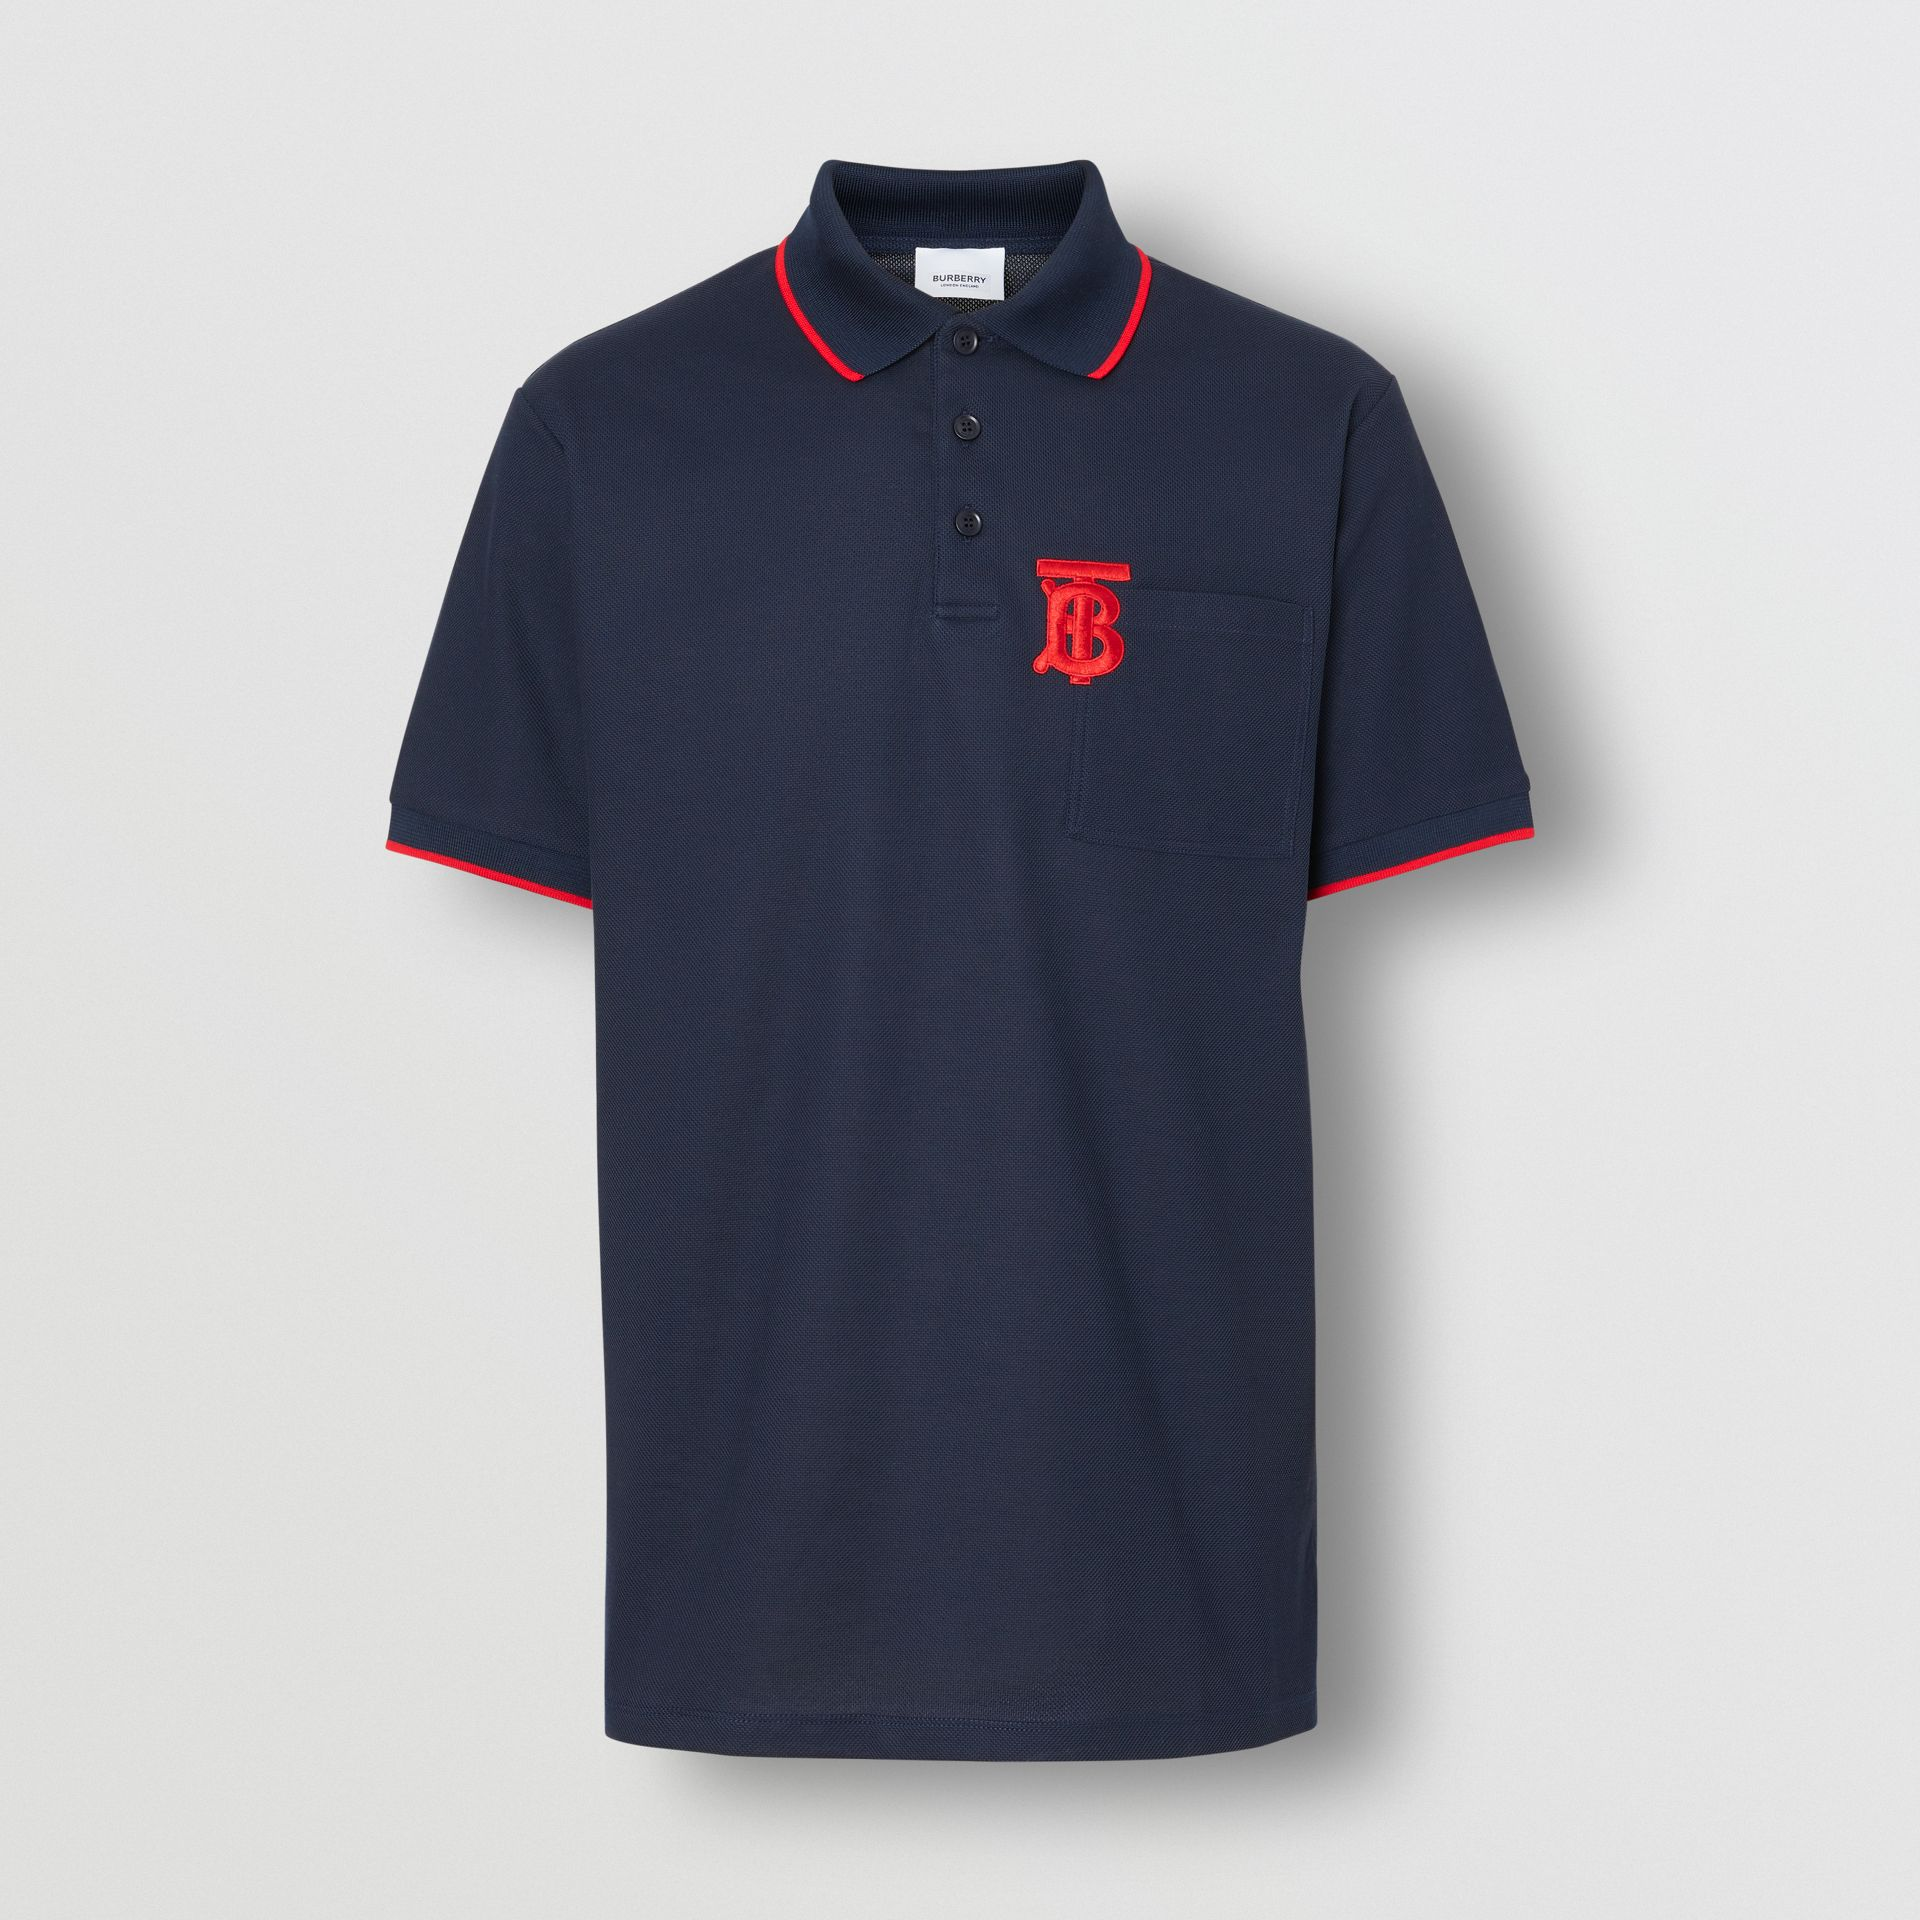 Monogram Motif Tipped Cotton Piqué Polo Shirt in Navy - Men | Burberry - gallery image 3